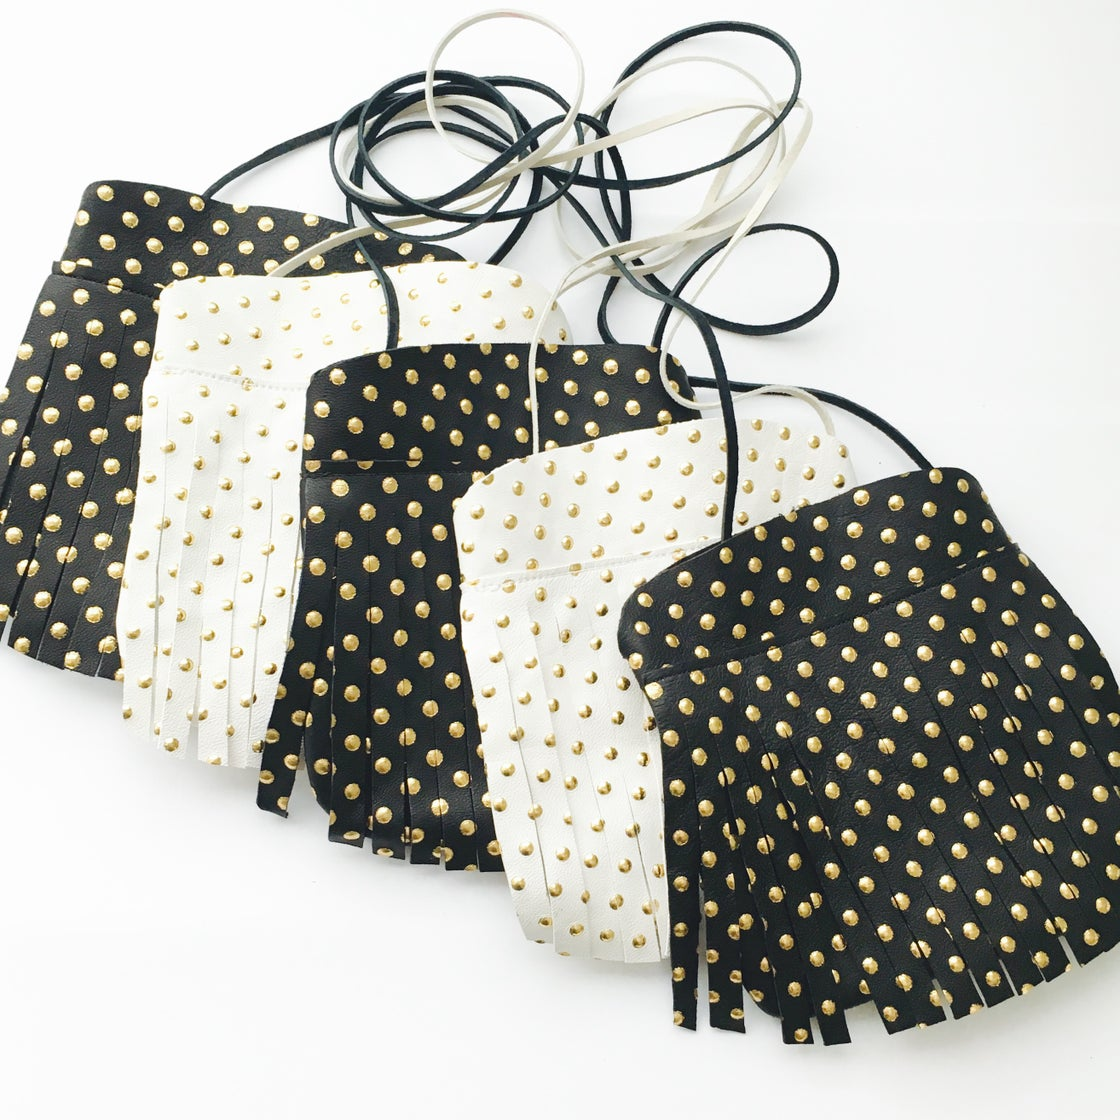 Image of Fringed Swaaag Bags